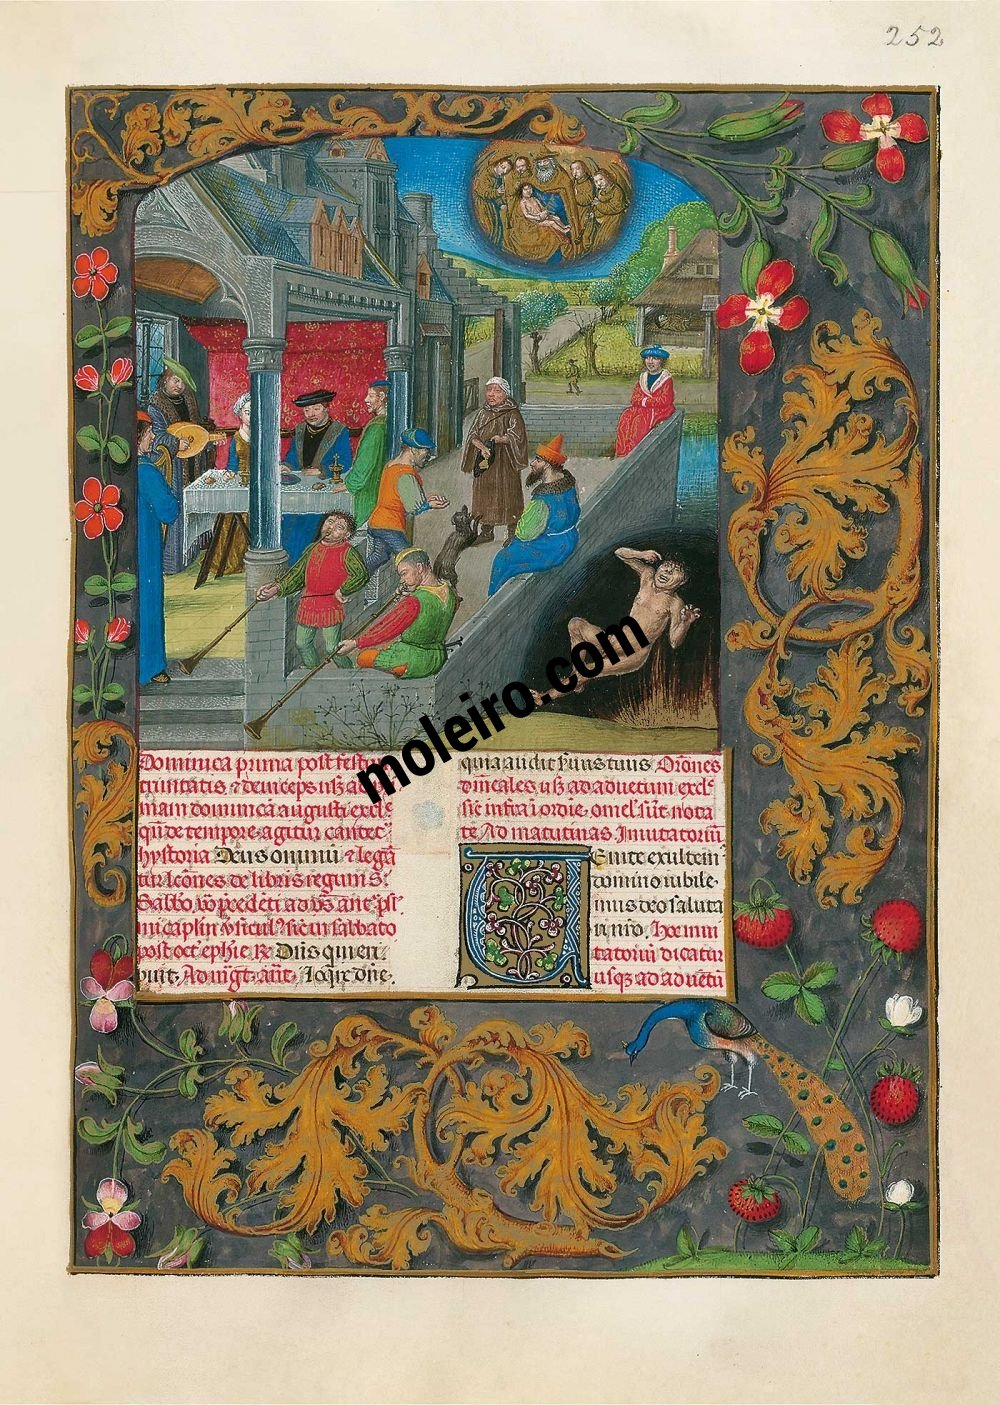 The Isabella Breviary f. 252r, Parable of Dives and Lazarus